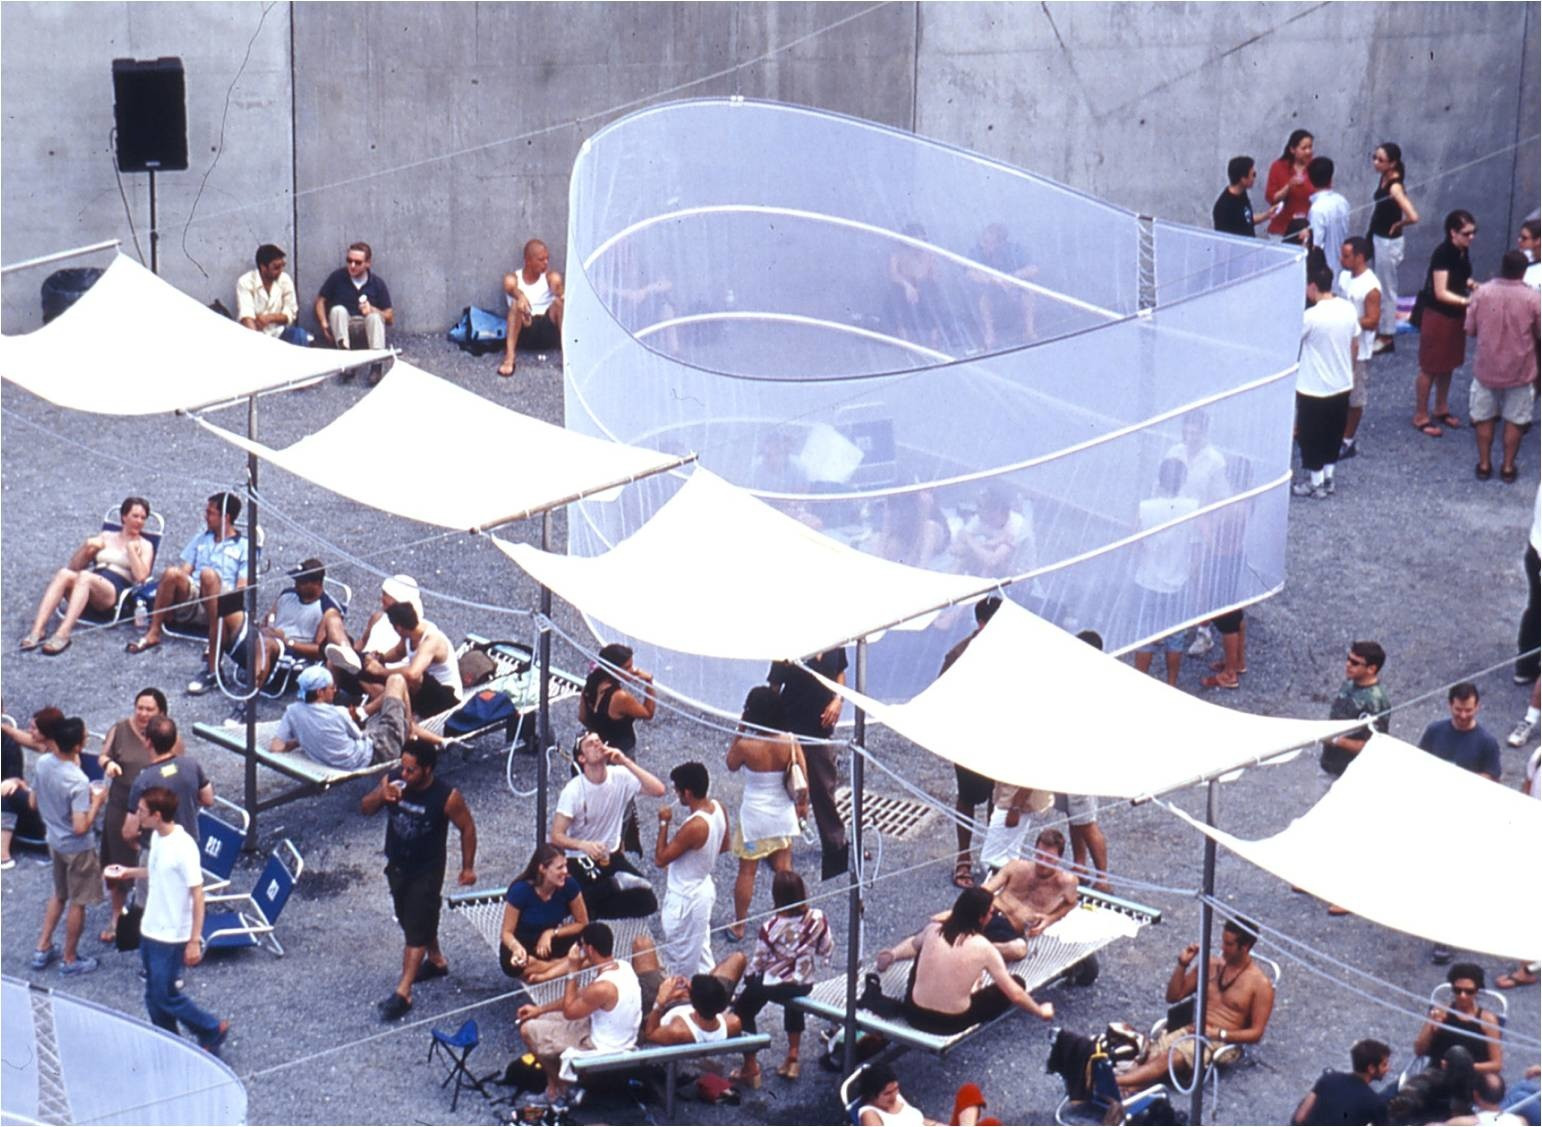 ROY. subWave. 2001. Young Architects Program 2001, MoMA PS1, New York, winner